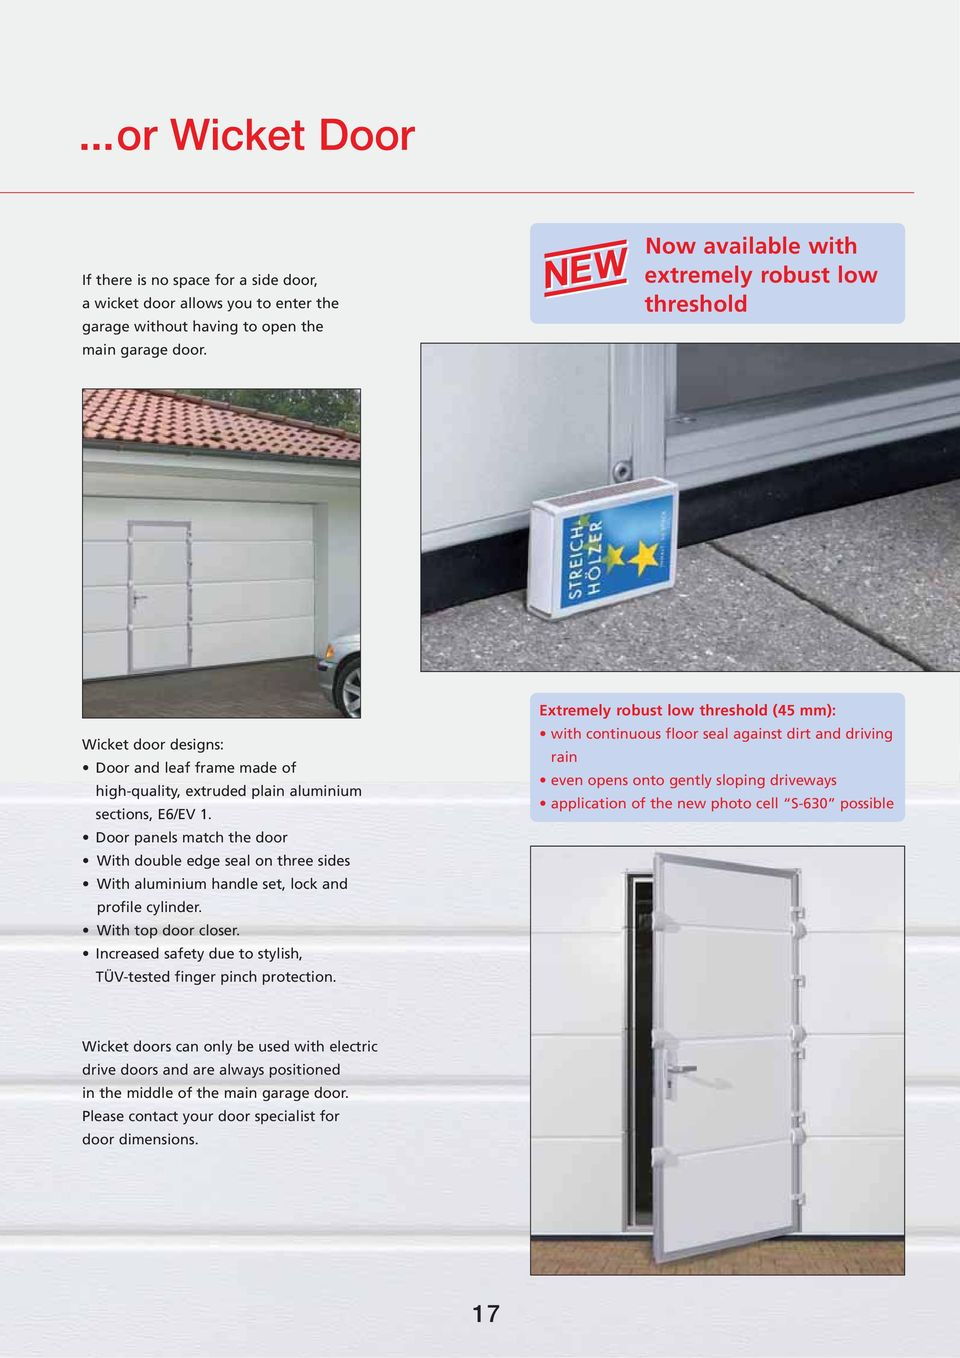 Door panels match the door With double edge seal on three sides With aluminium handle set, lock and profile cylinder. With top door closer.